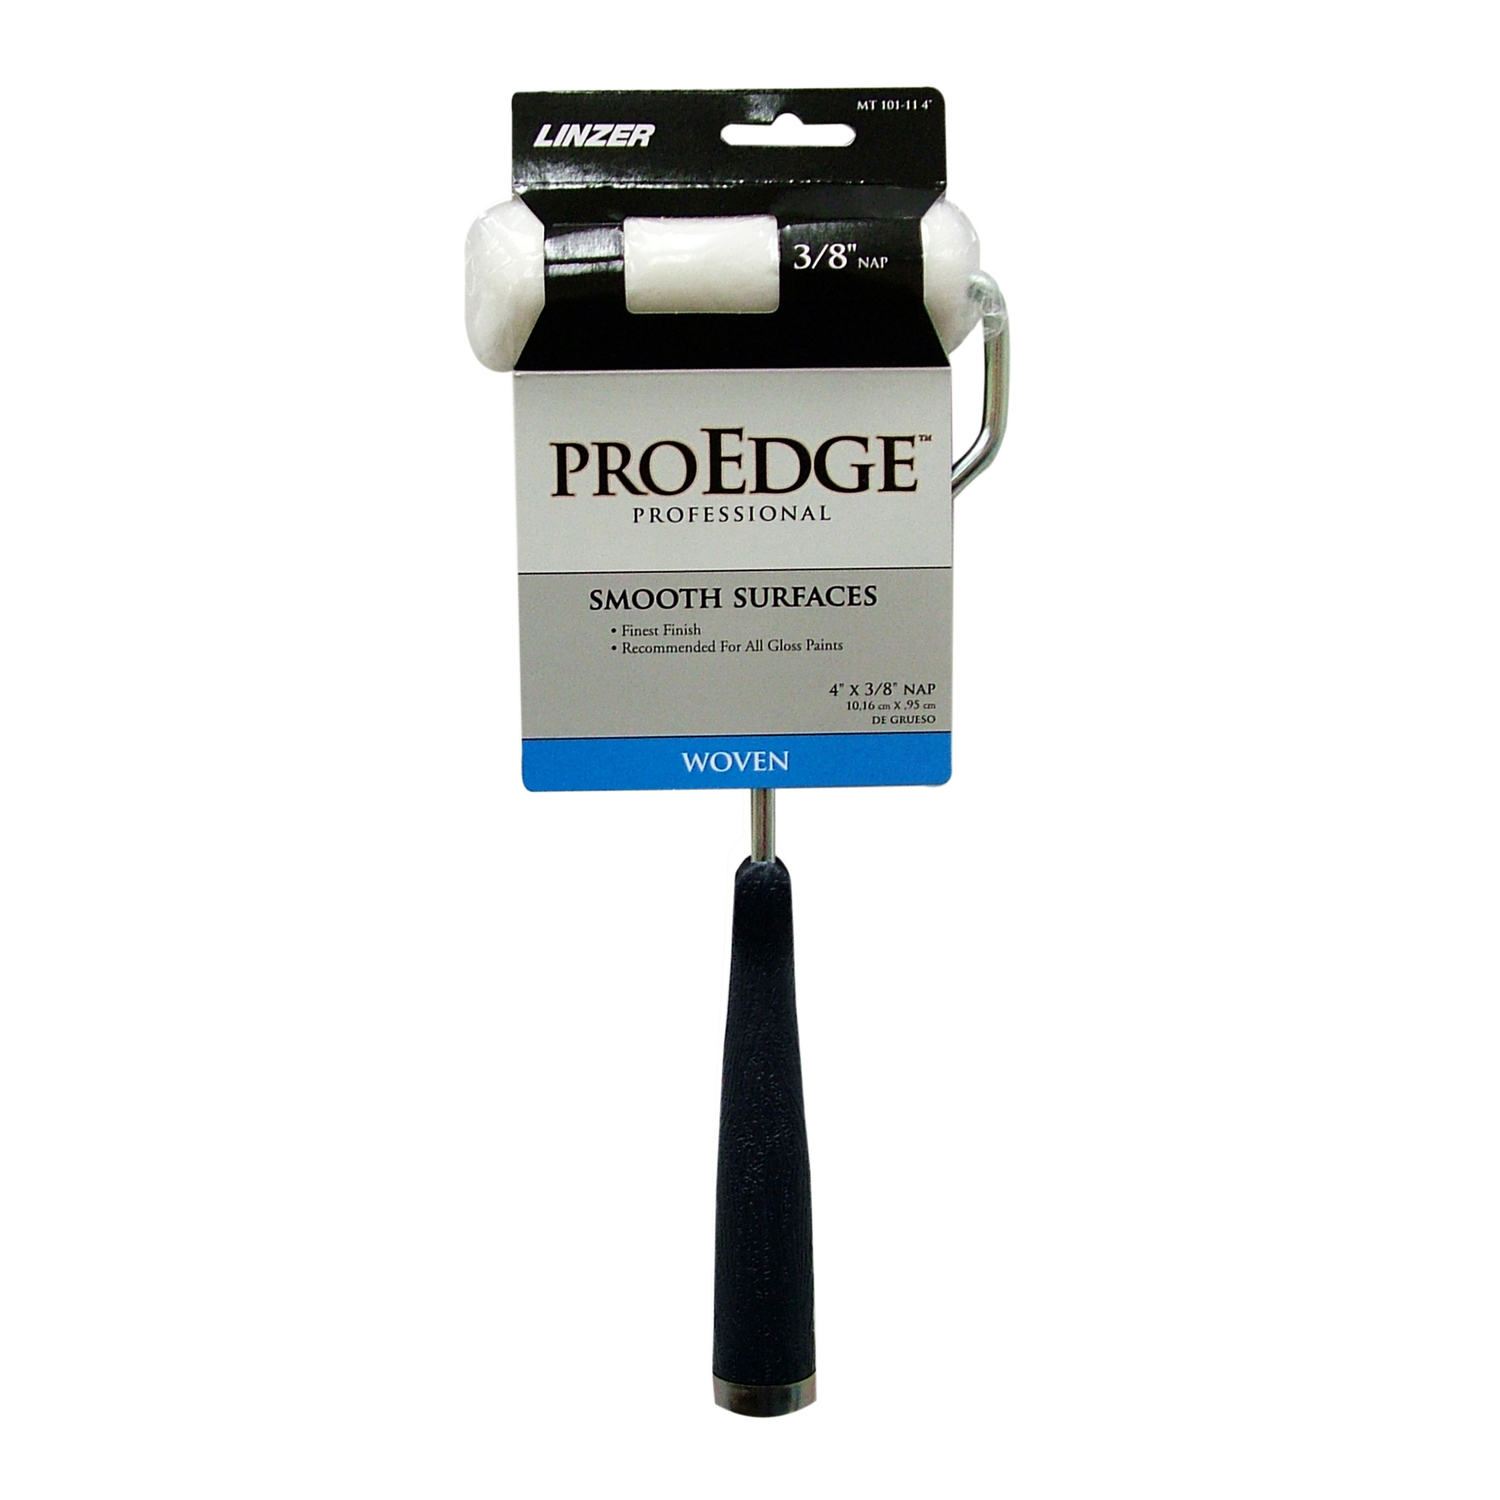 Linzer  Pro Edge  Threaded End 4 in. W Metal/Plastic  Mini  Paint Roller Frame and Cover